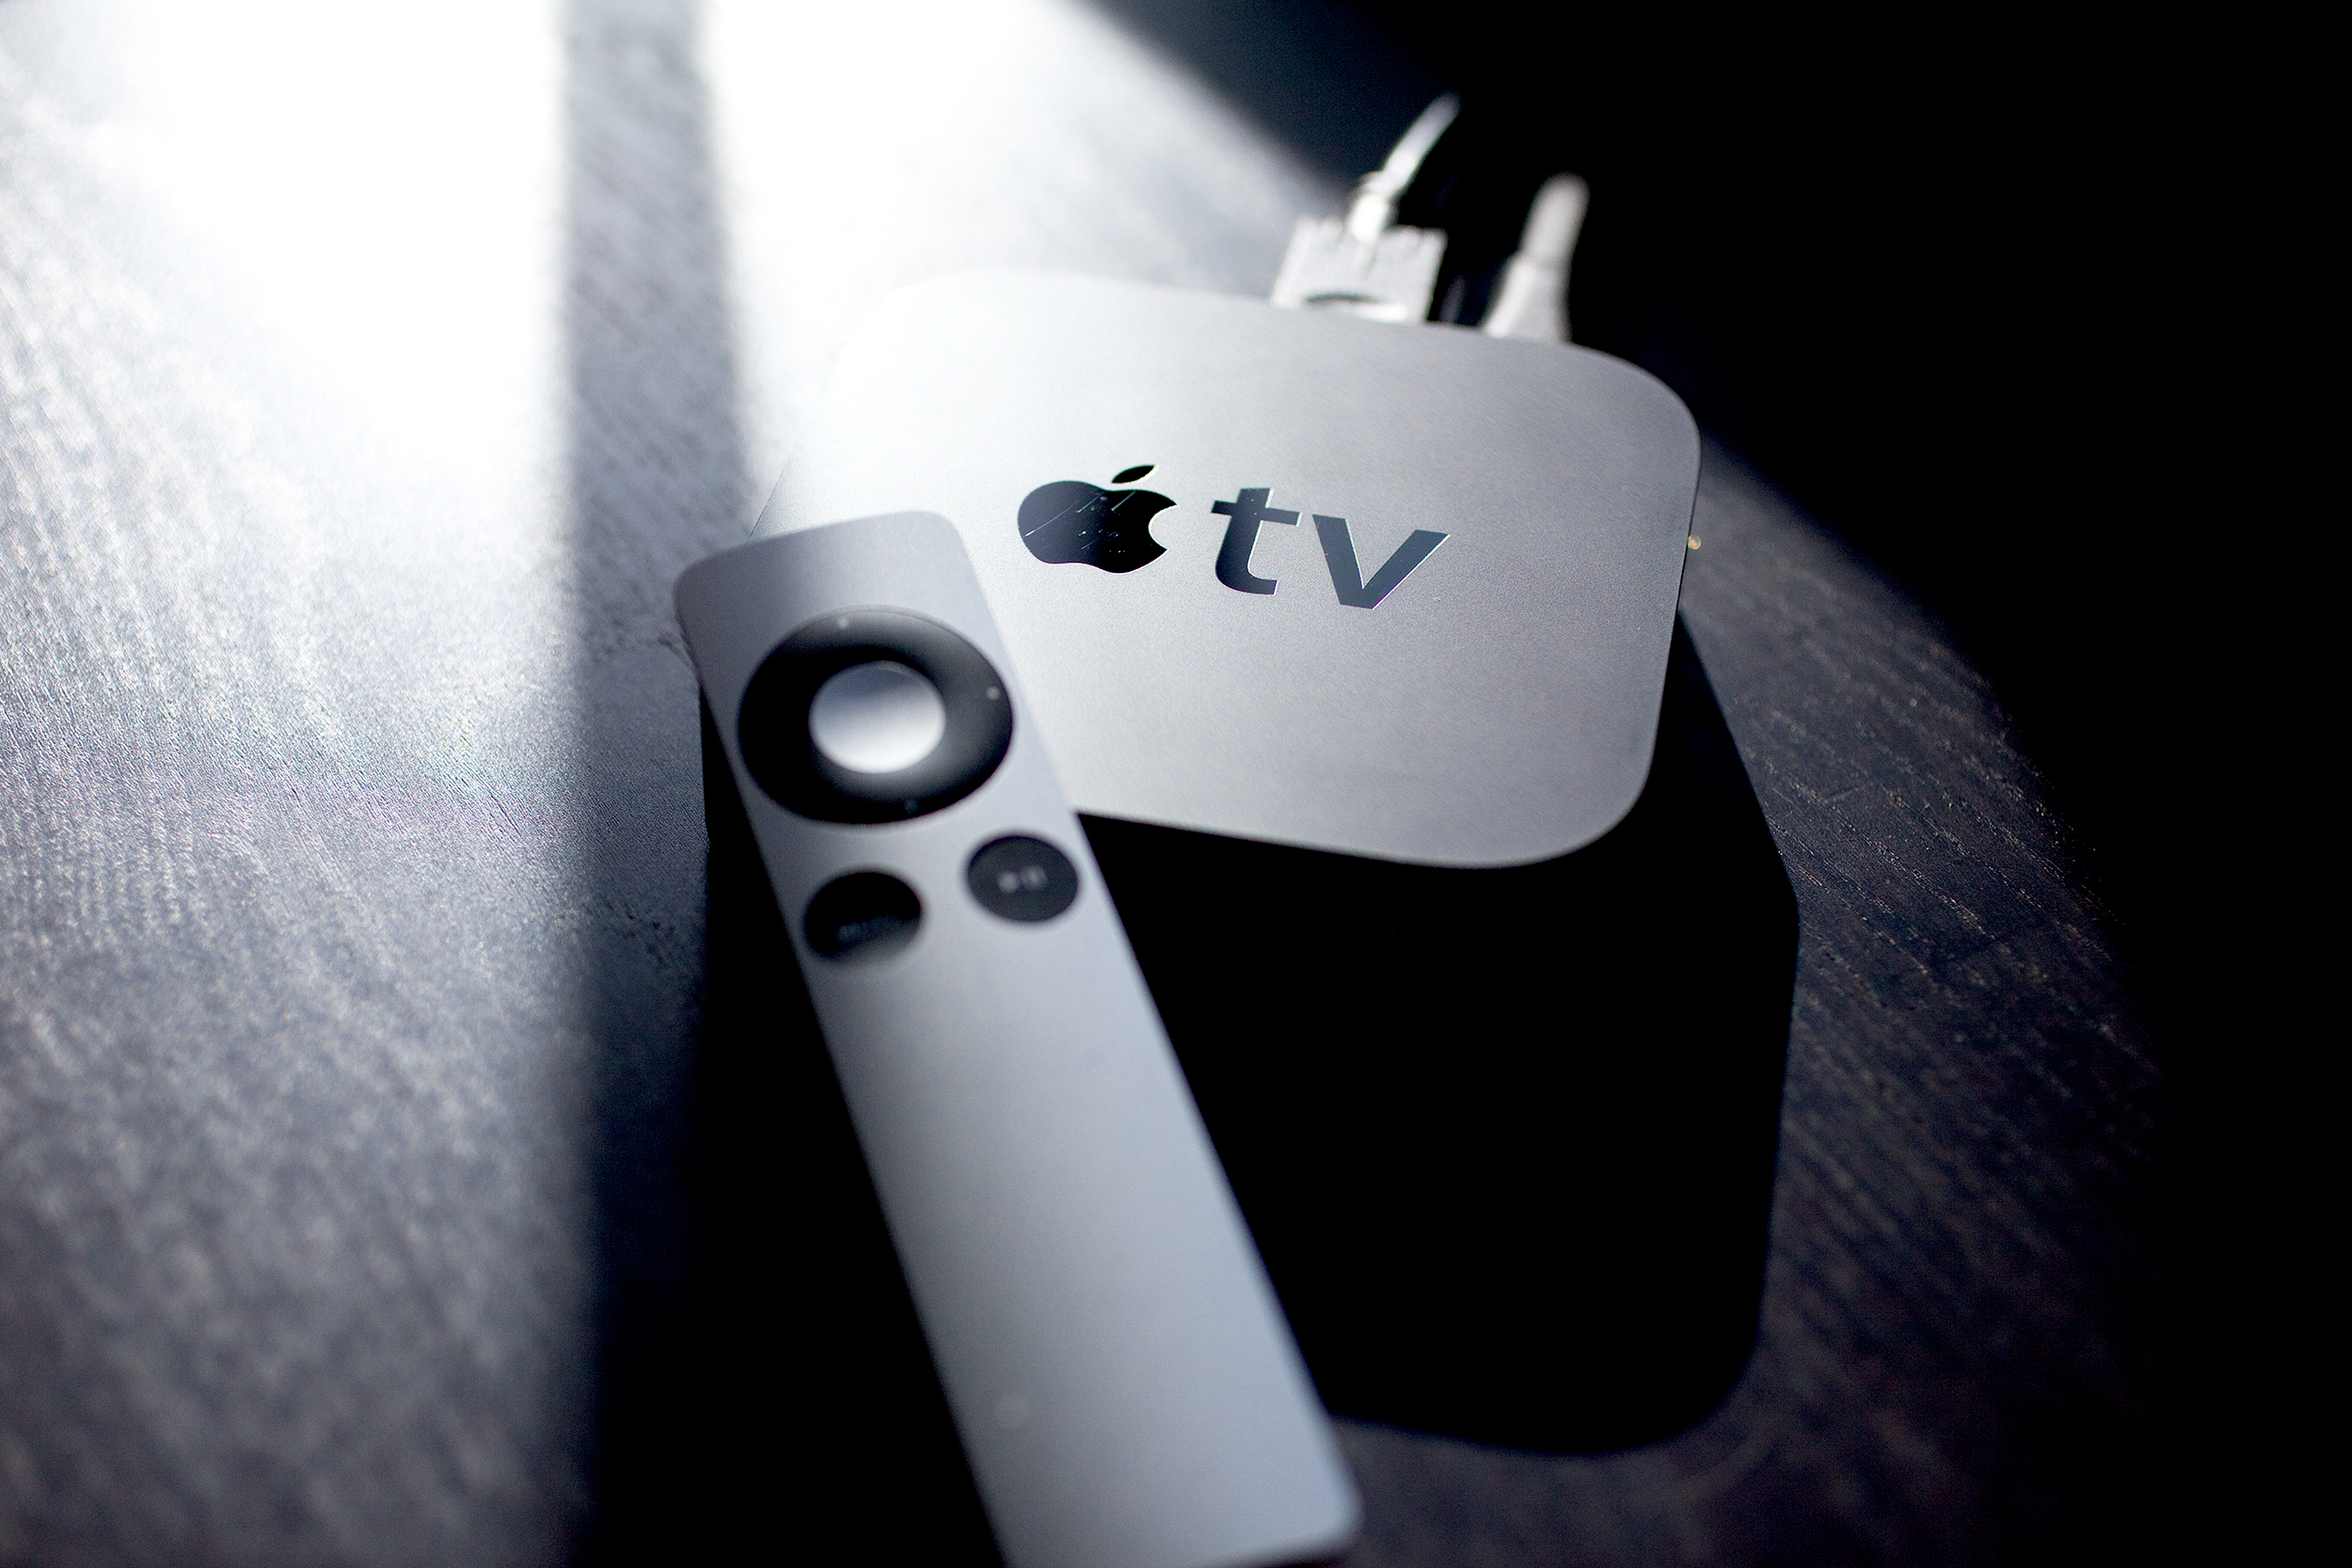 The next-generation Apple TV is shaping up to be a gamer's paradise